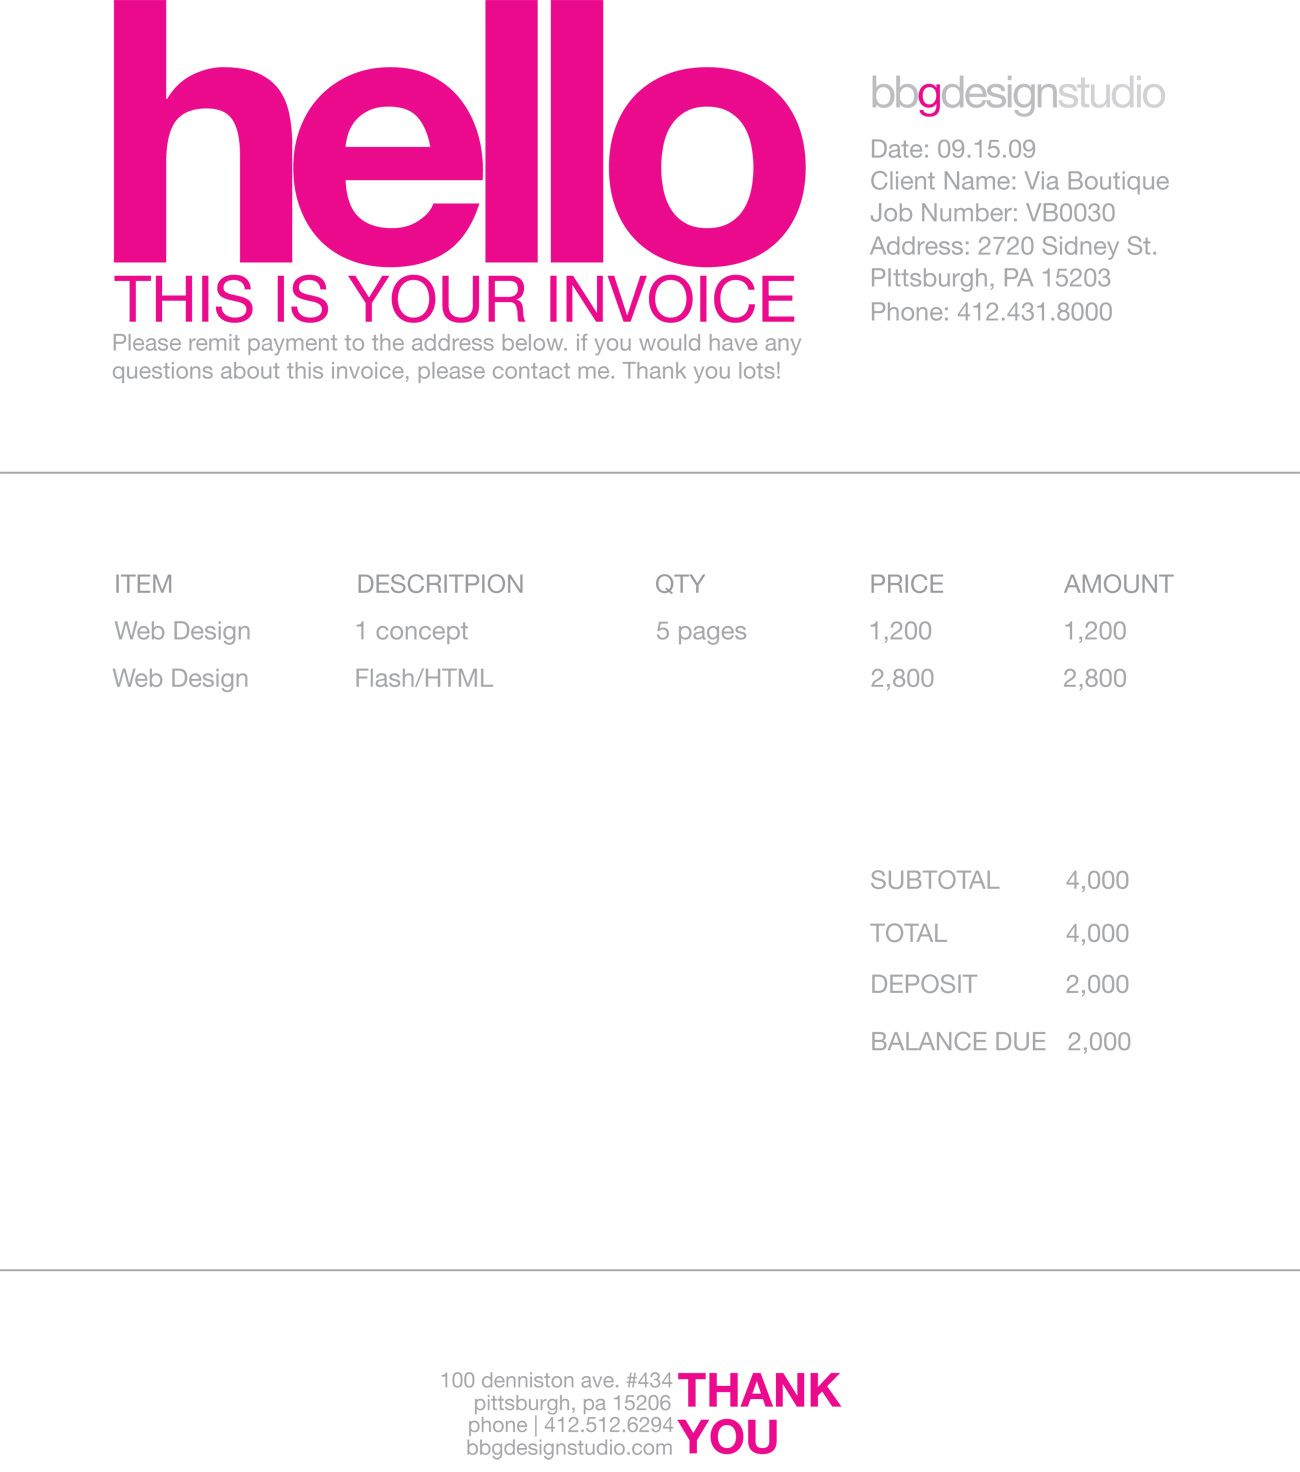 Aaaaeroincus  Marvellous  Images About Invoice Design On Pinterest With Lovely Standard Invoice Besides Paypal Create Invoice Furthermore How To Invoice Someone With Amazing Invoice Template Open Office Also Create Invoice Template In Addition Intuit Invoice And How To Create An Invoice In Word As Well As Free Online Invoicing Additionally Create An Invoice Online From Pinterestcom With Aaaaeroincus  Lovely  Images About Invoice Design On Pinterest With Amazing Standard Invoice Besides Paypal Create Invoice Furthermore How To Invoice Someone And Marvellous Invoice Template Open Office Also Create Invoice Template In Addition Intuit Invoice From Pinterestcom